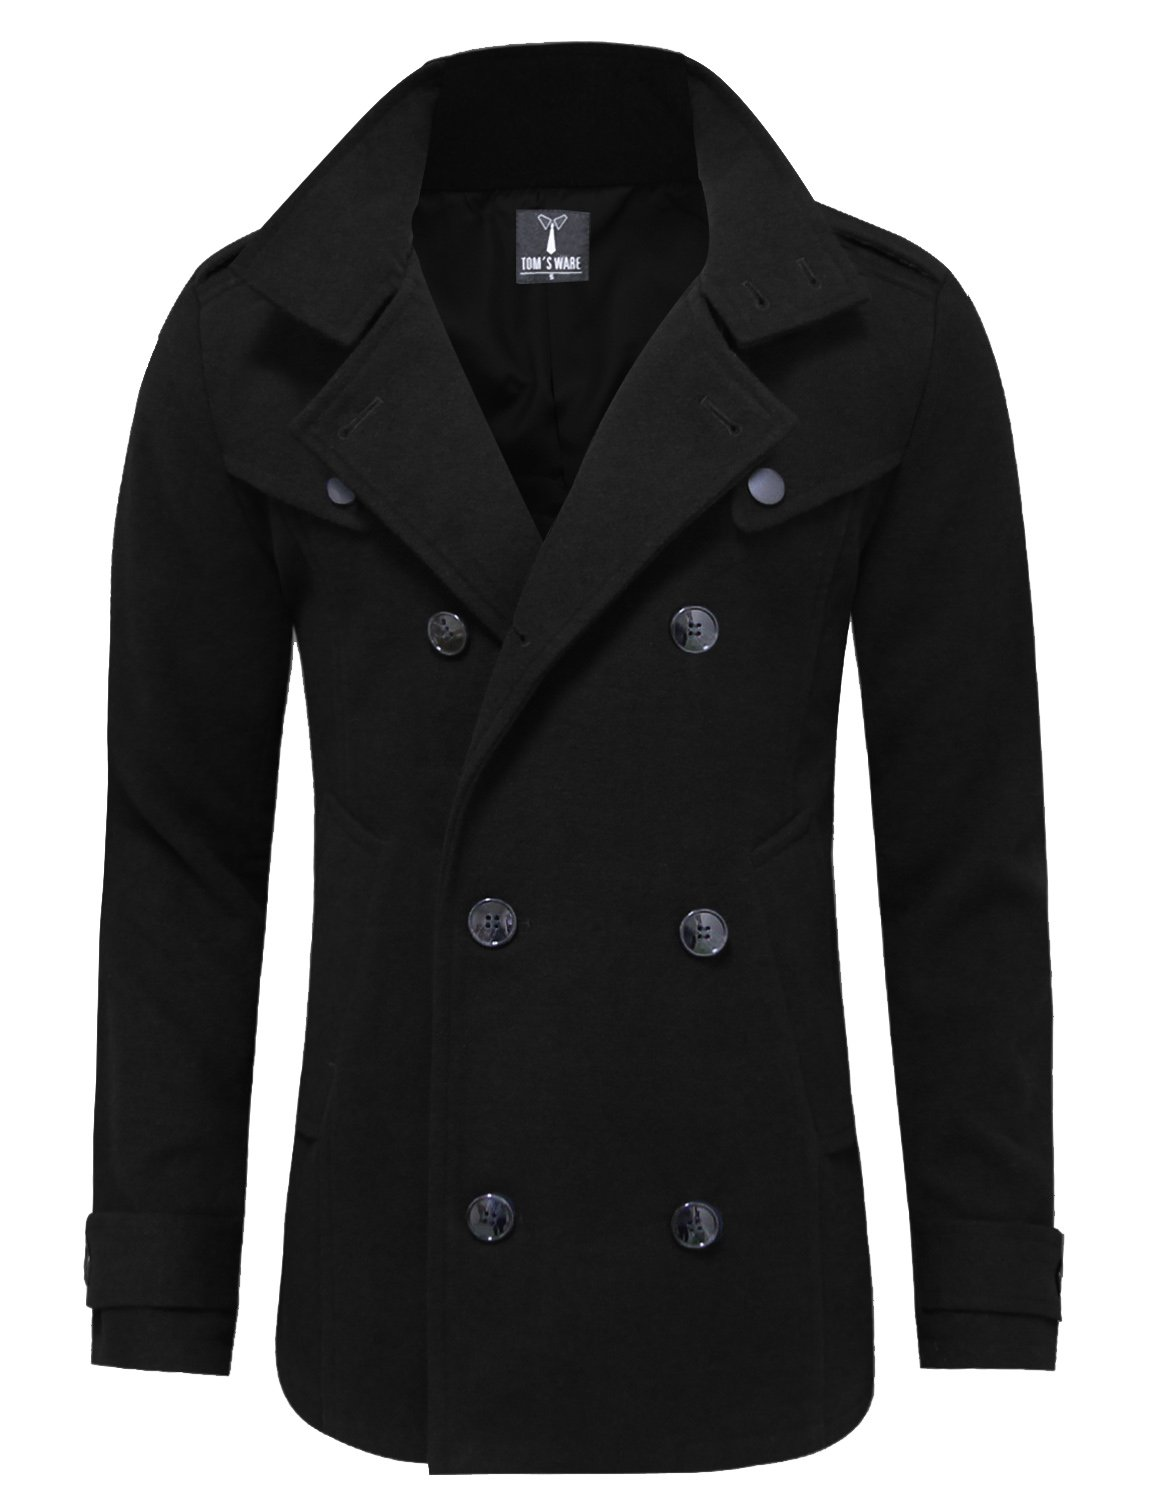 Tom's Ware Mens Stylish Fashion Classic Wool Double Breasted Pea Coat TWCC06-BLACK-US M